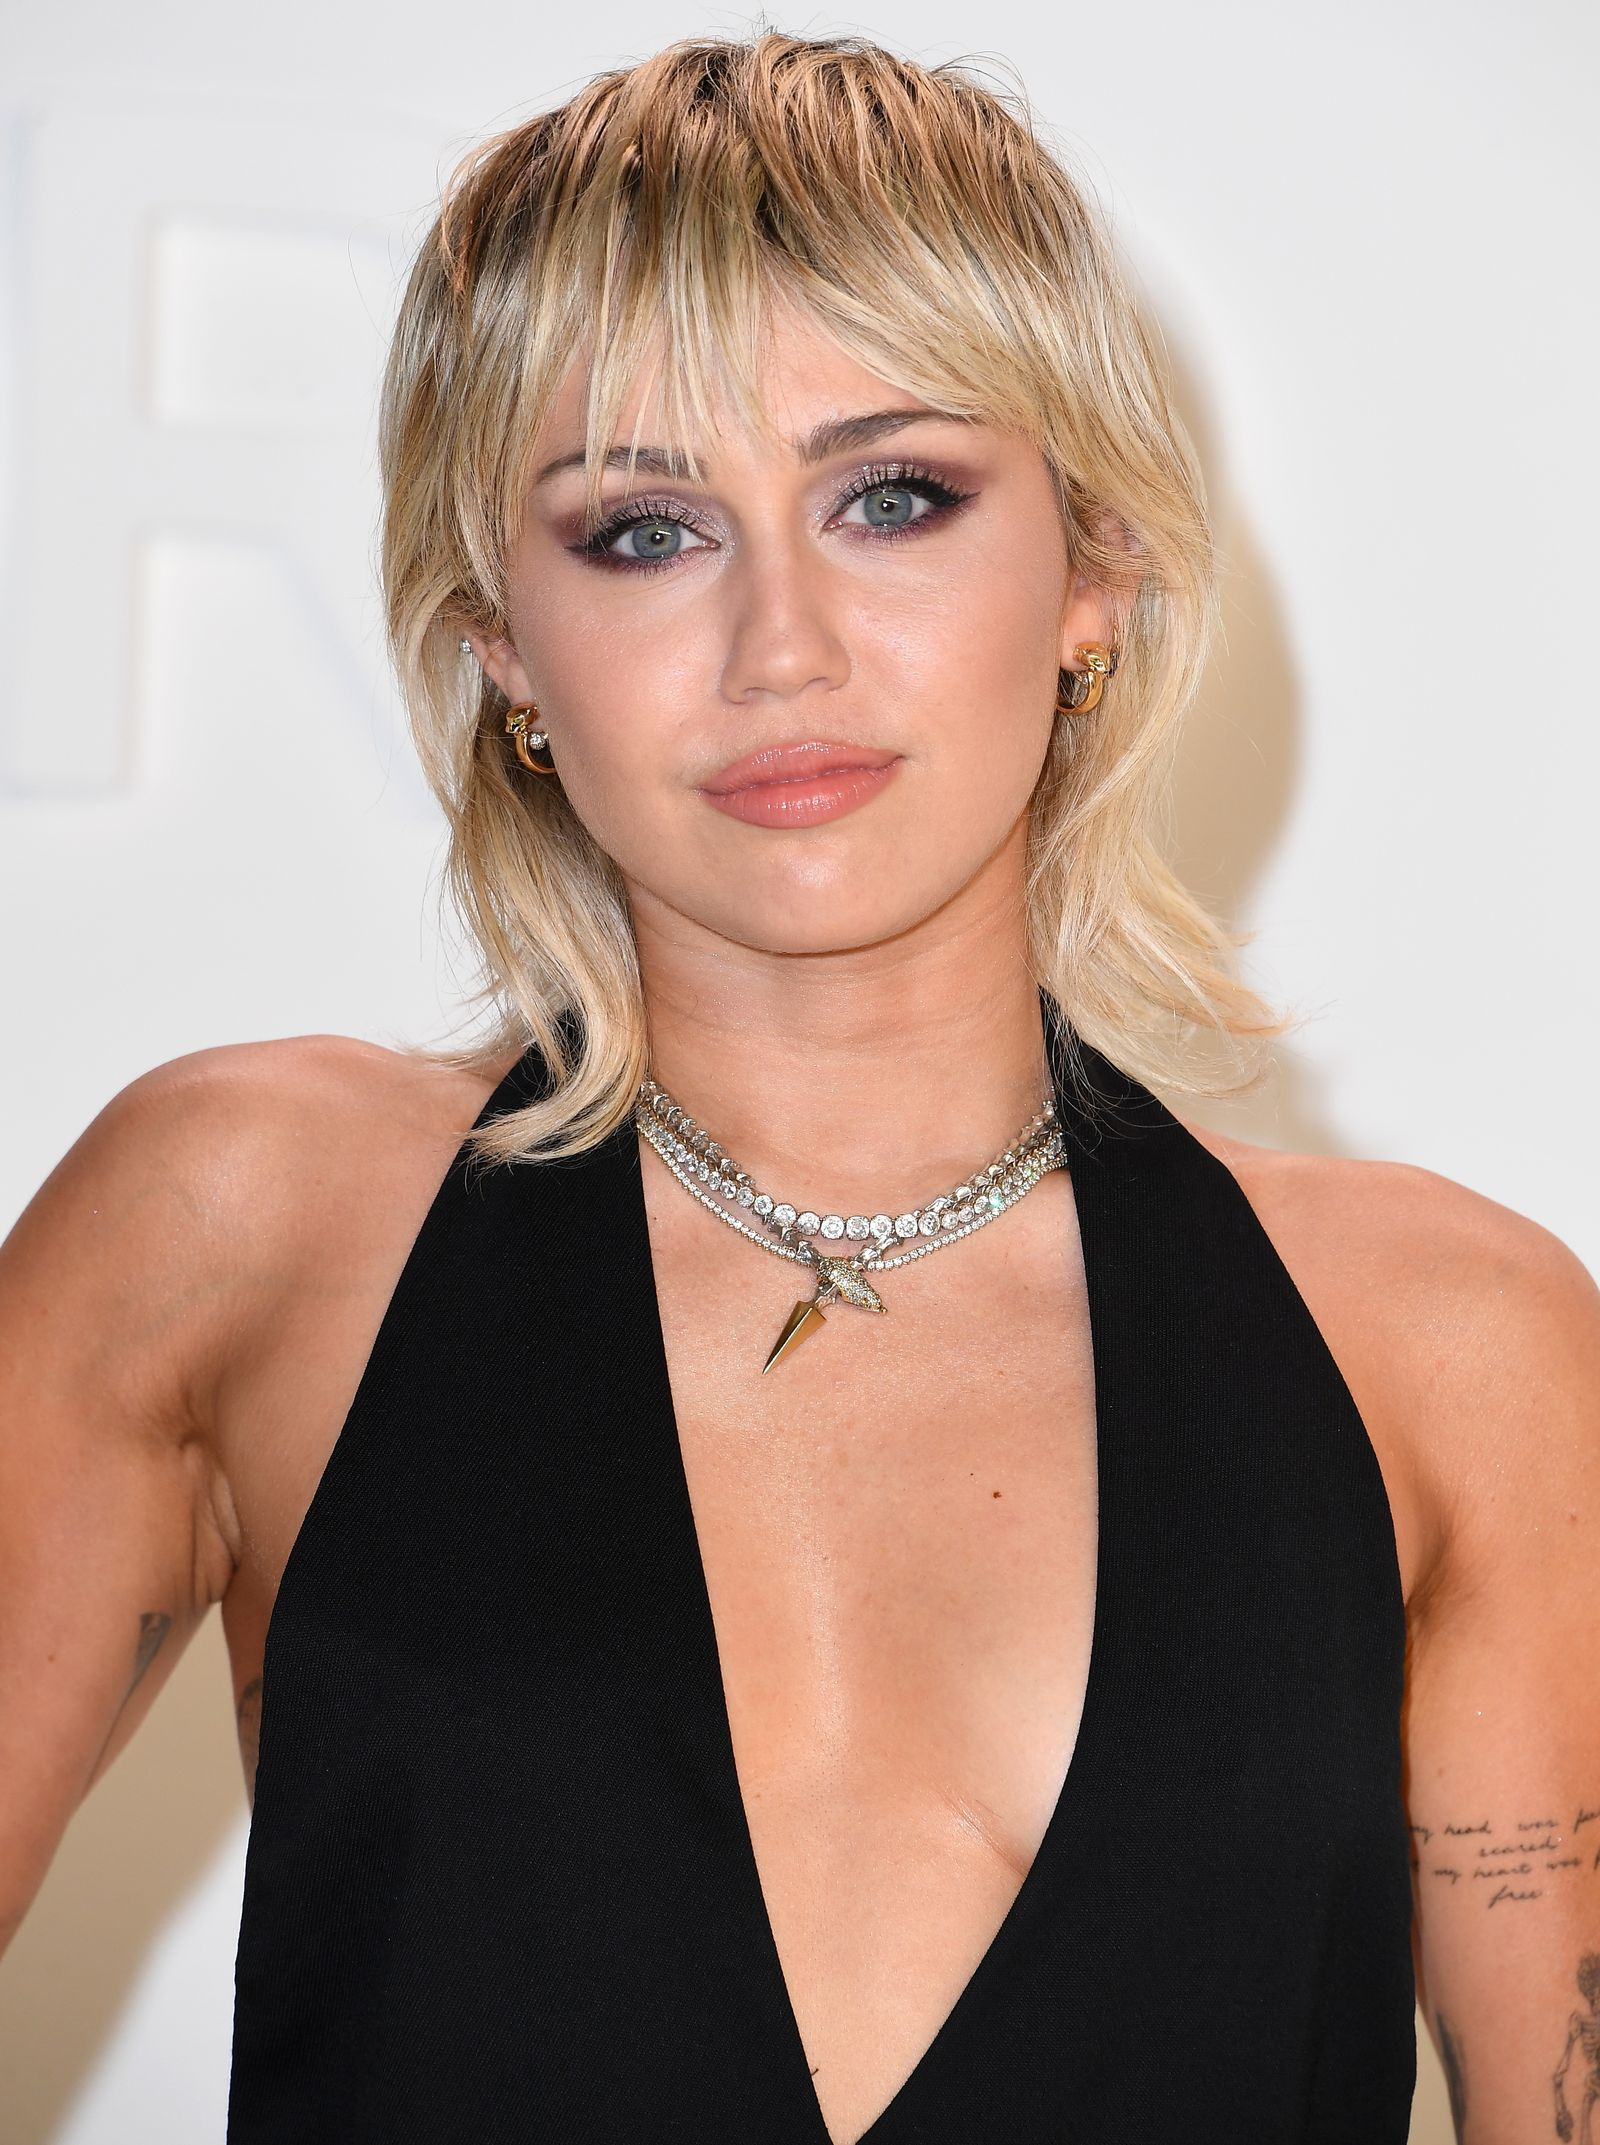 Miley Cyrus Just Got A Mullet Upgrade And It S A Look In 2020 Miley Cyrus Hair Mullet Hairstyle Miley Cyrus